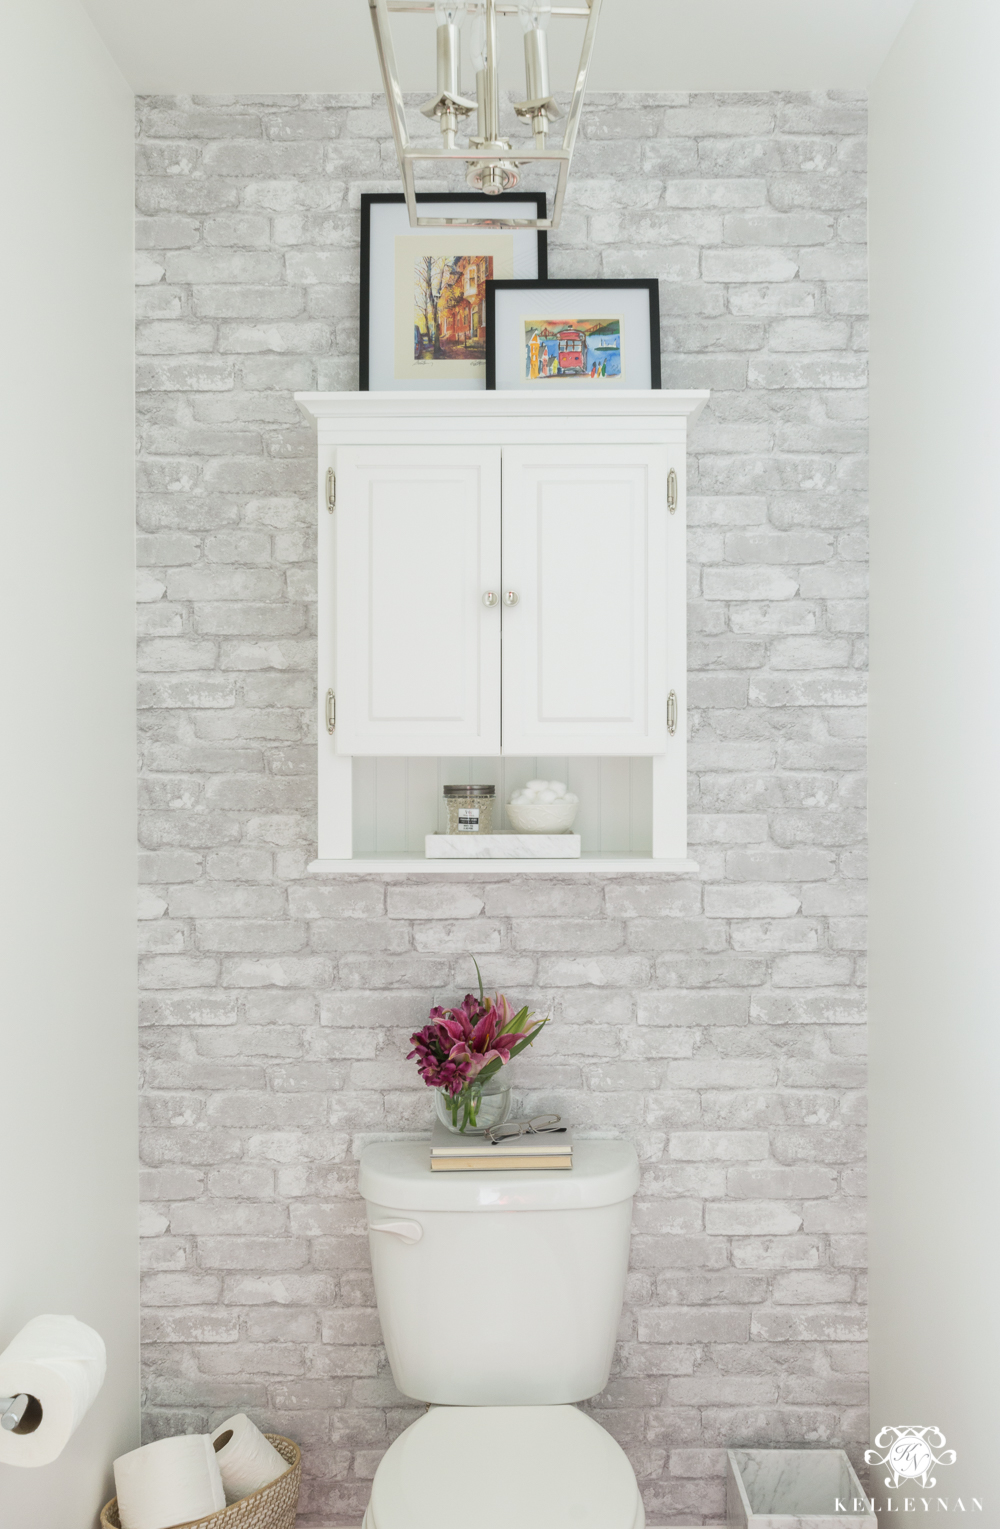 Toilet Room Makeover Reveal and Clever Bathroom Storage - Kelley Nan